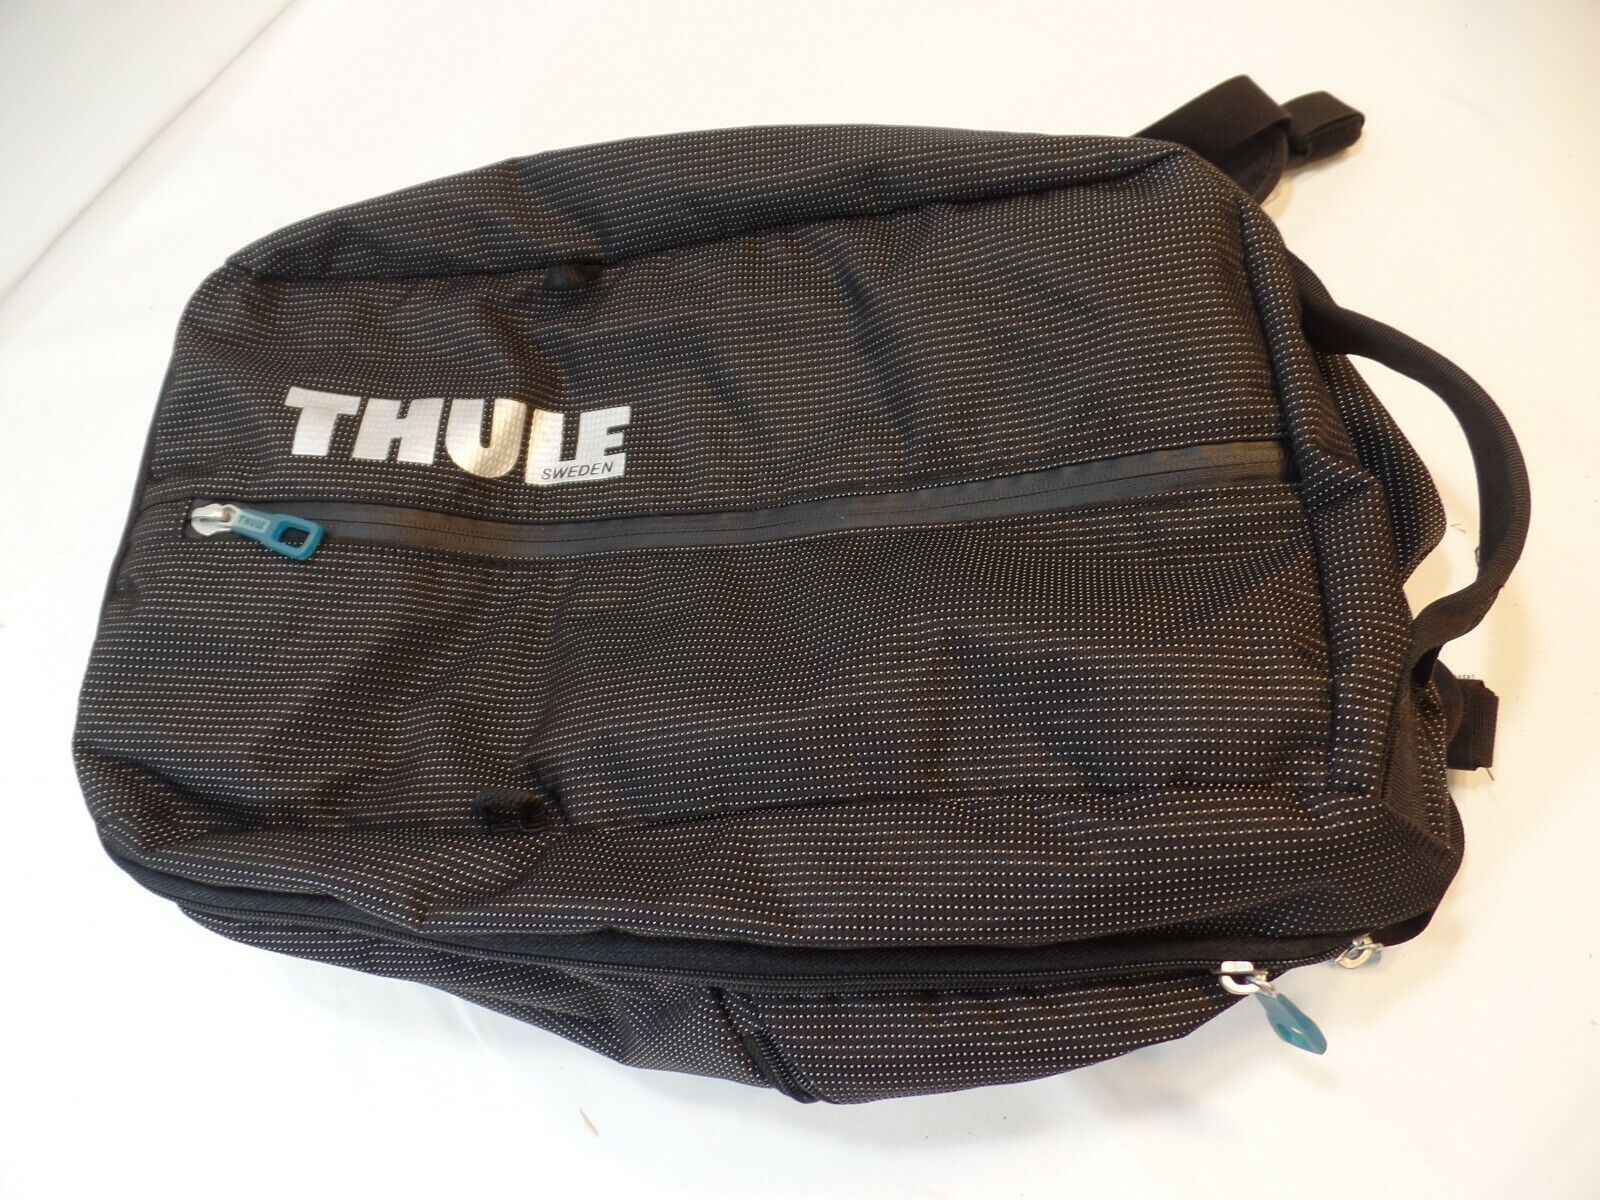 THULE Day Pack Backpack Commuter Laptop Work Bag 20 CLEAN  - $45.00